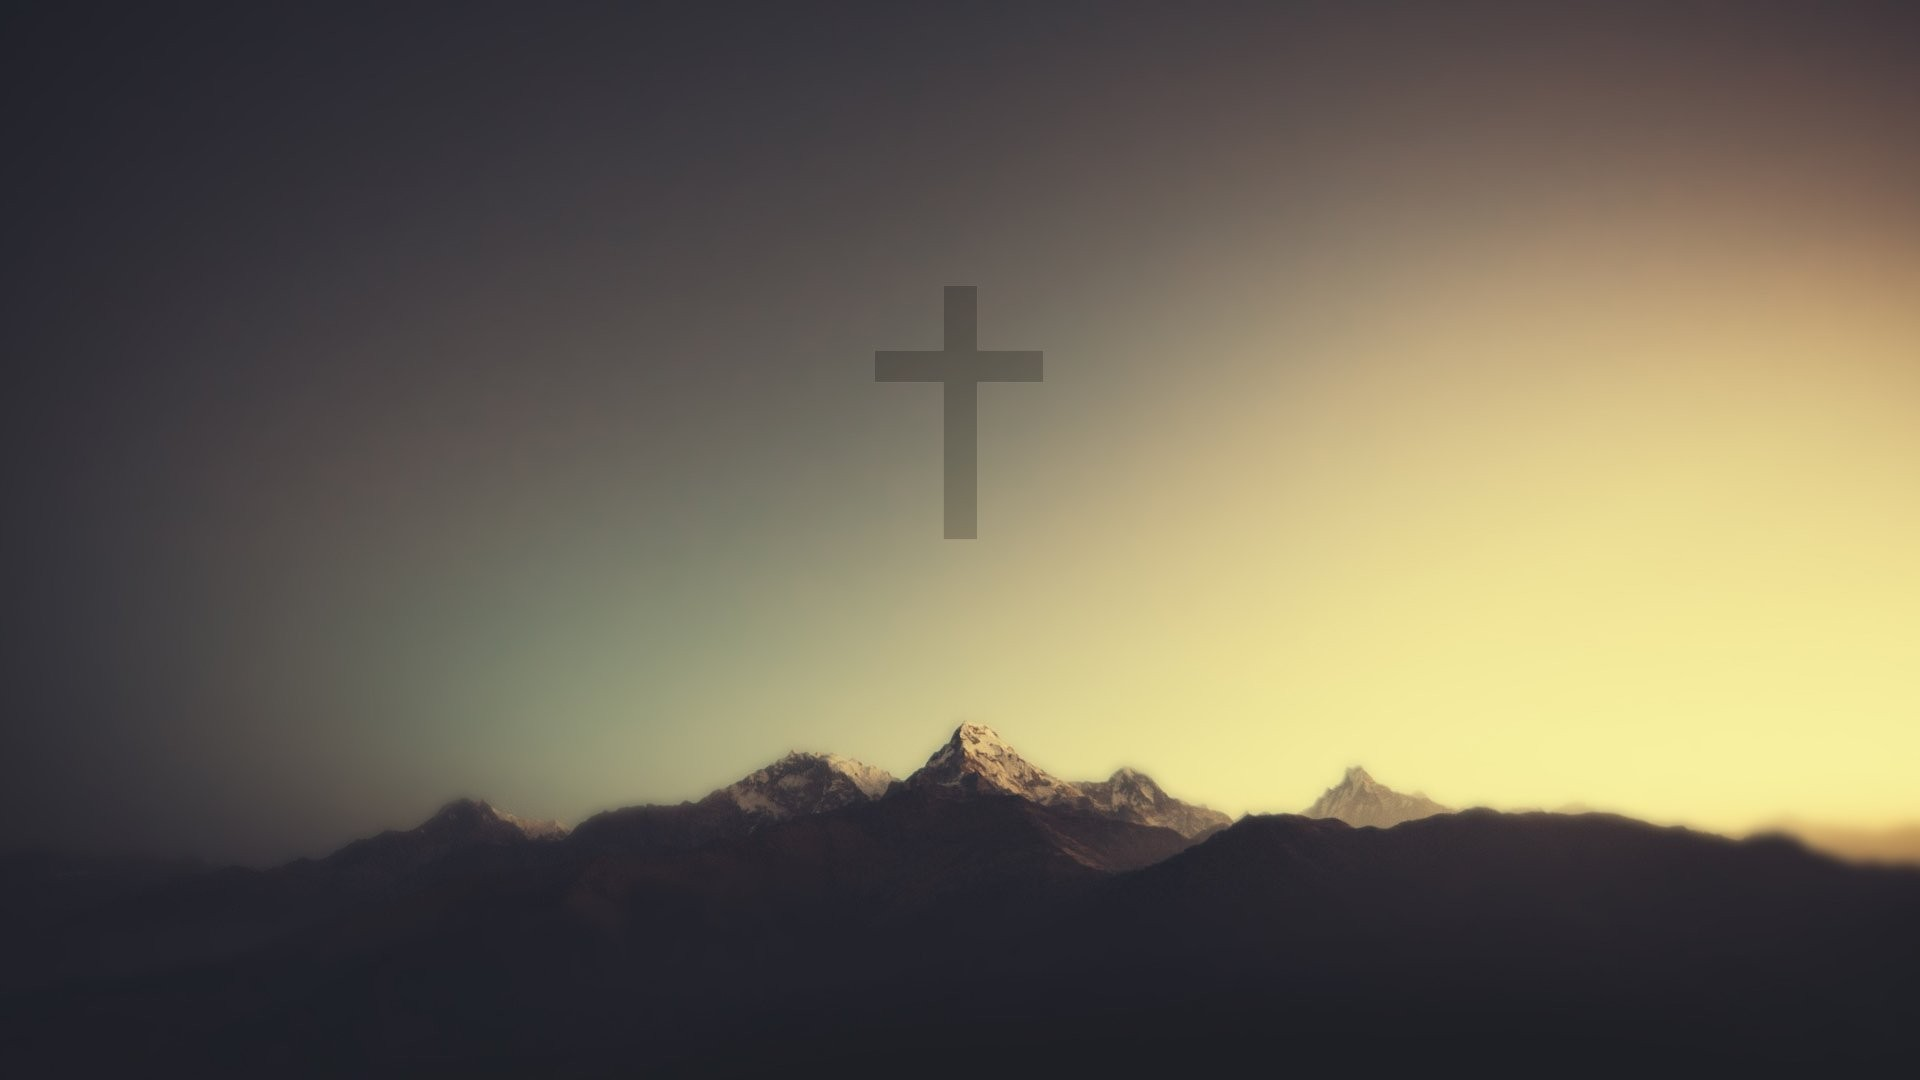 72 Christian Ipad Wallpapers on WallpaperPlay 1920x1080